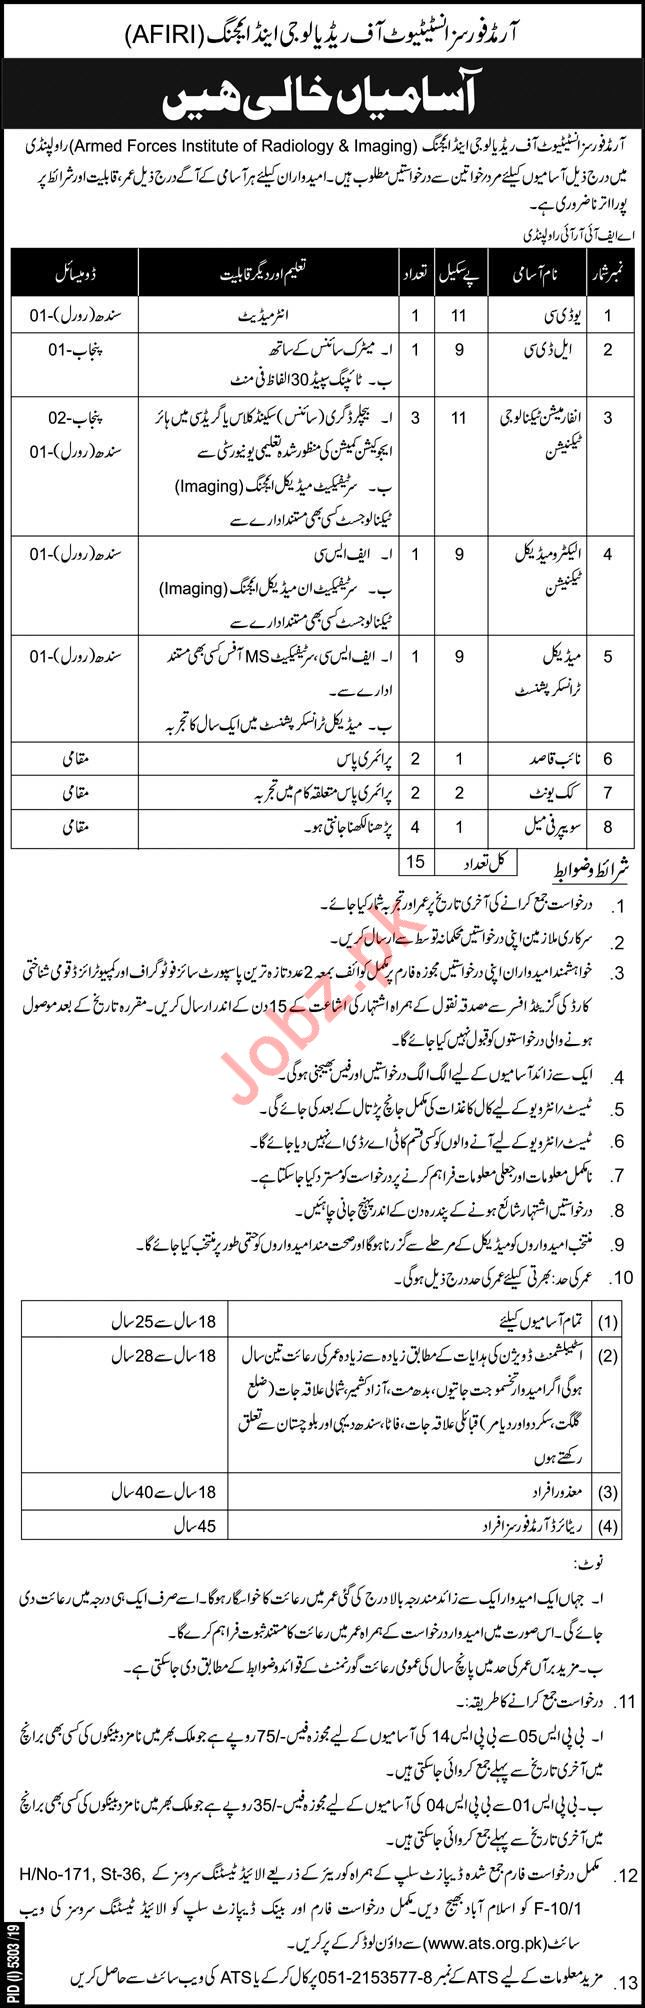 Armed Forces Institute of Radiology & Imaging Jobs via ATS